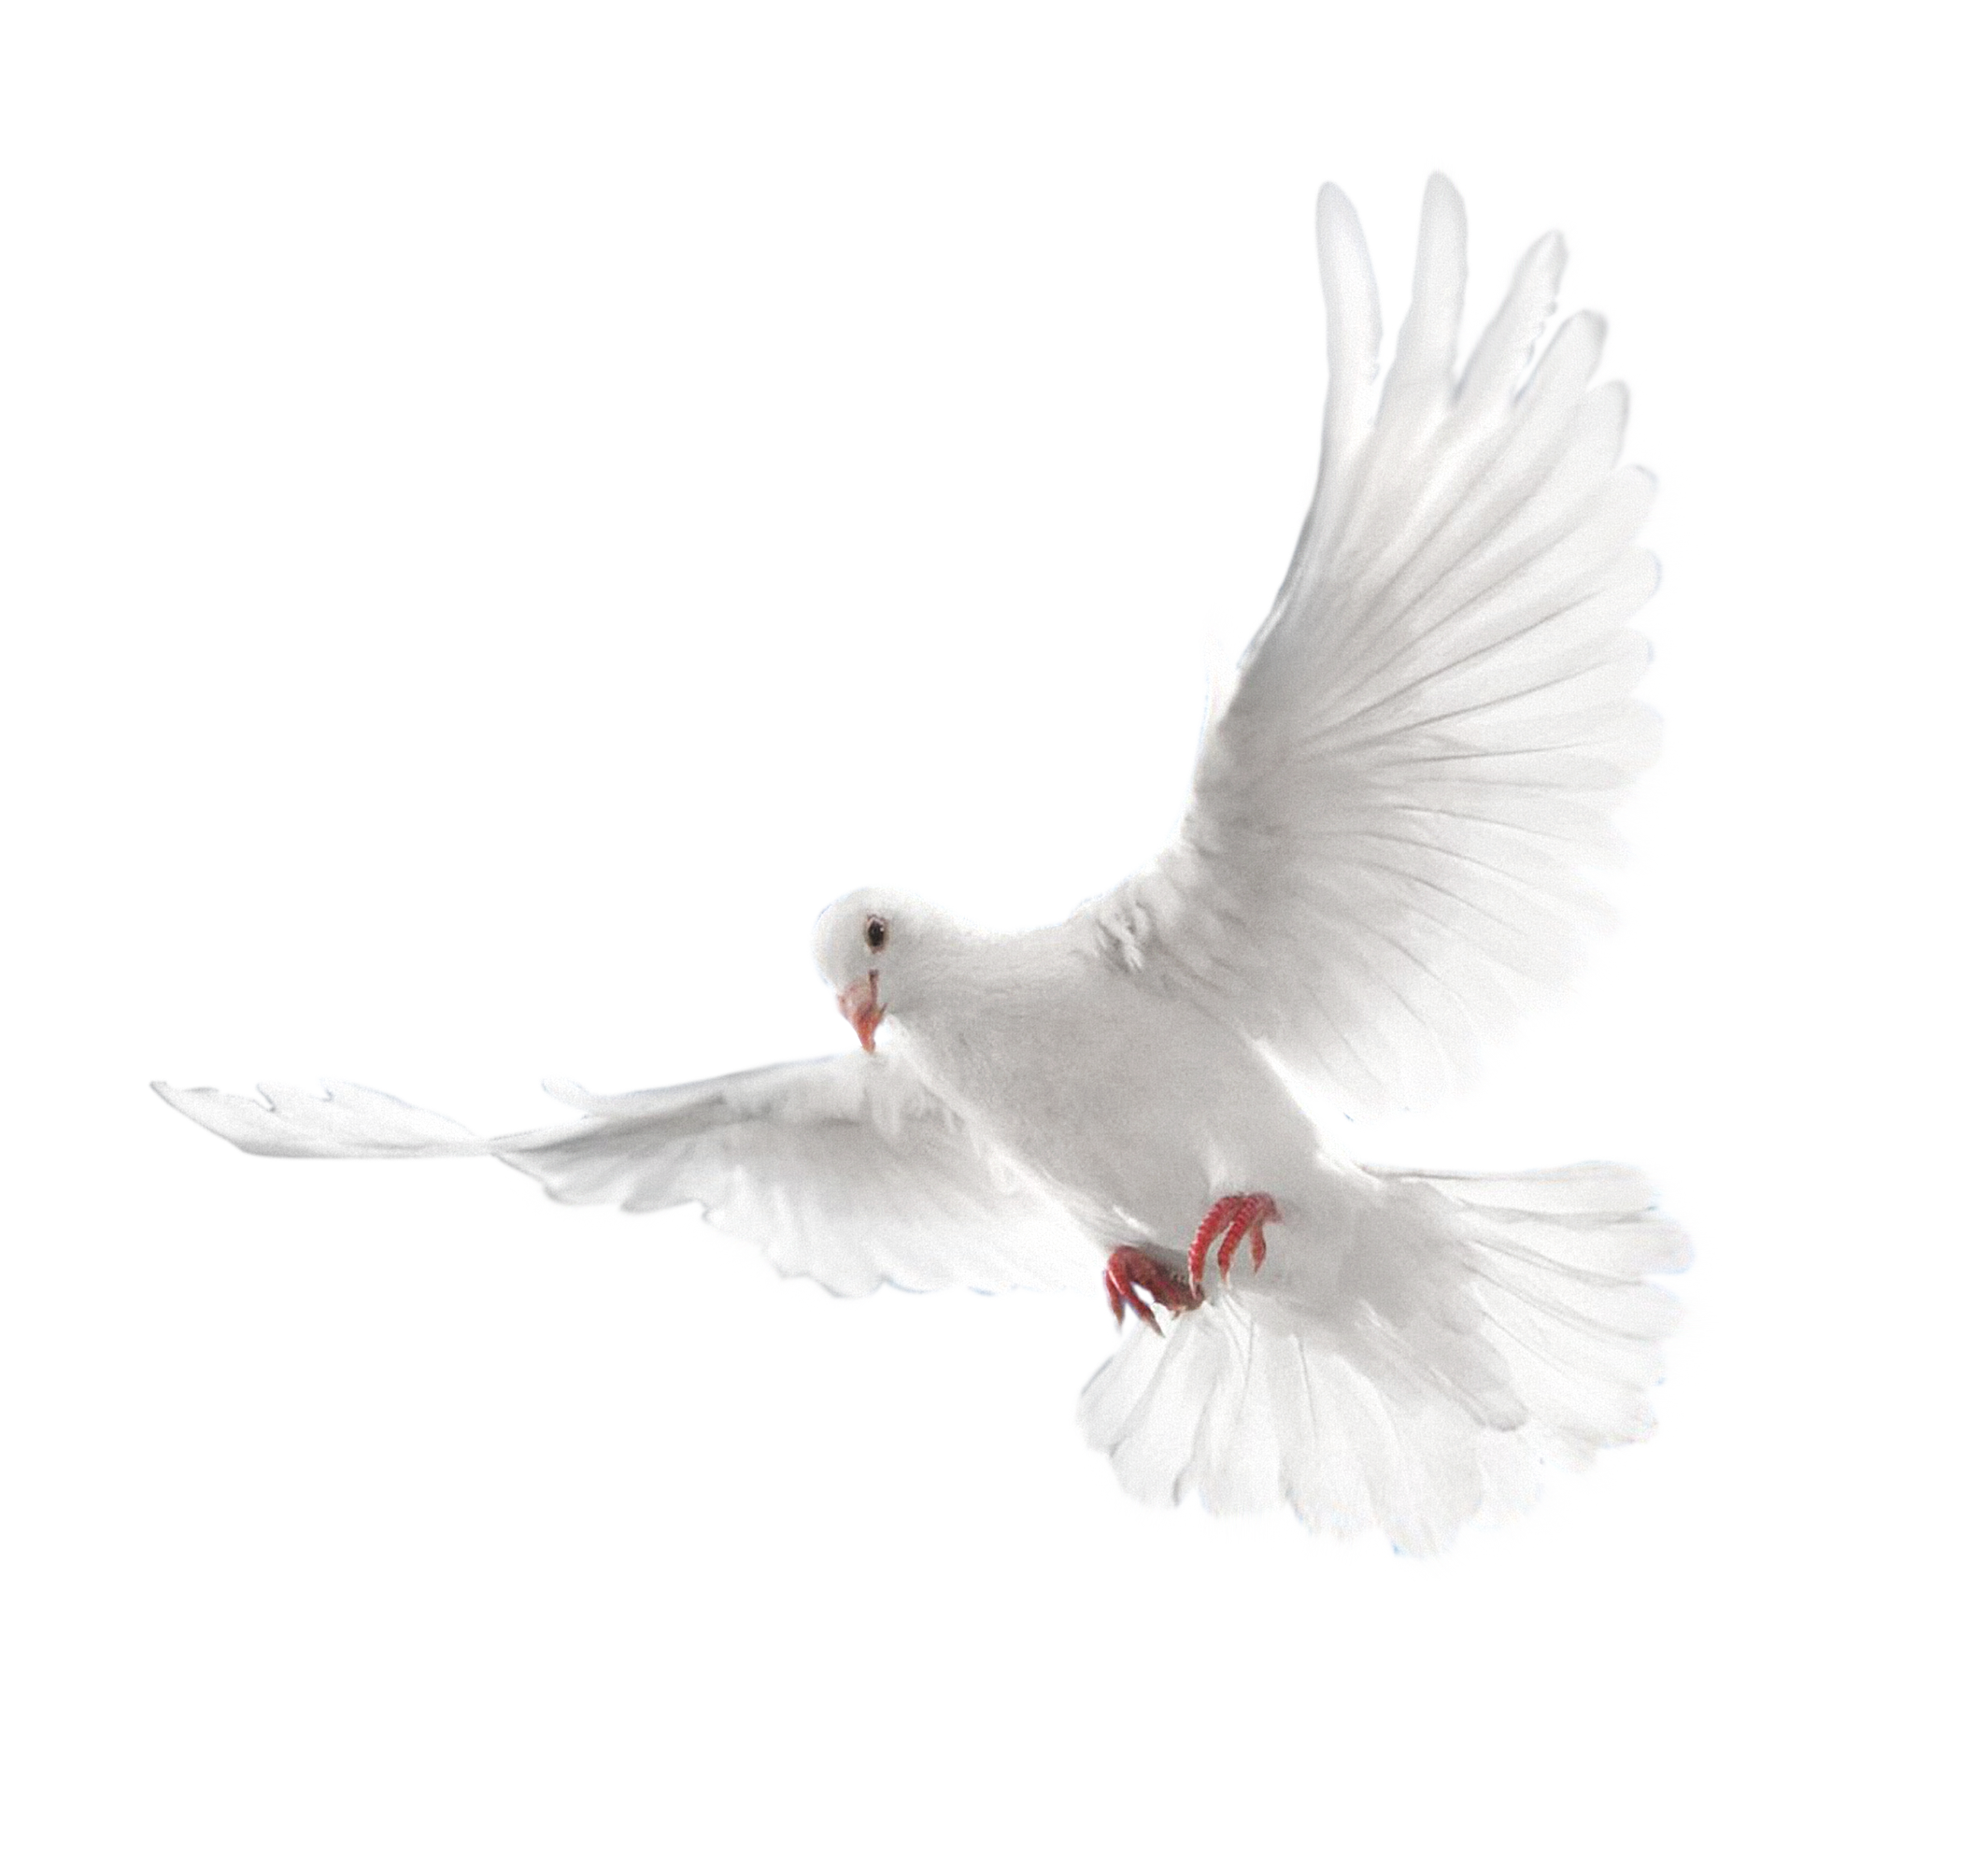 Holy spirit dove png. Columbidae doves as symbols